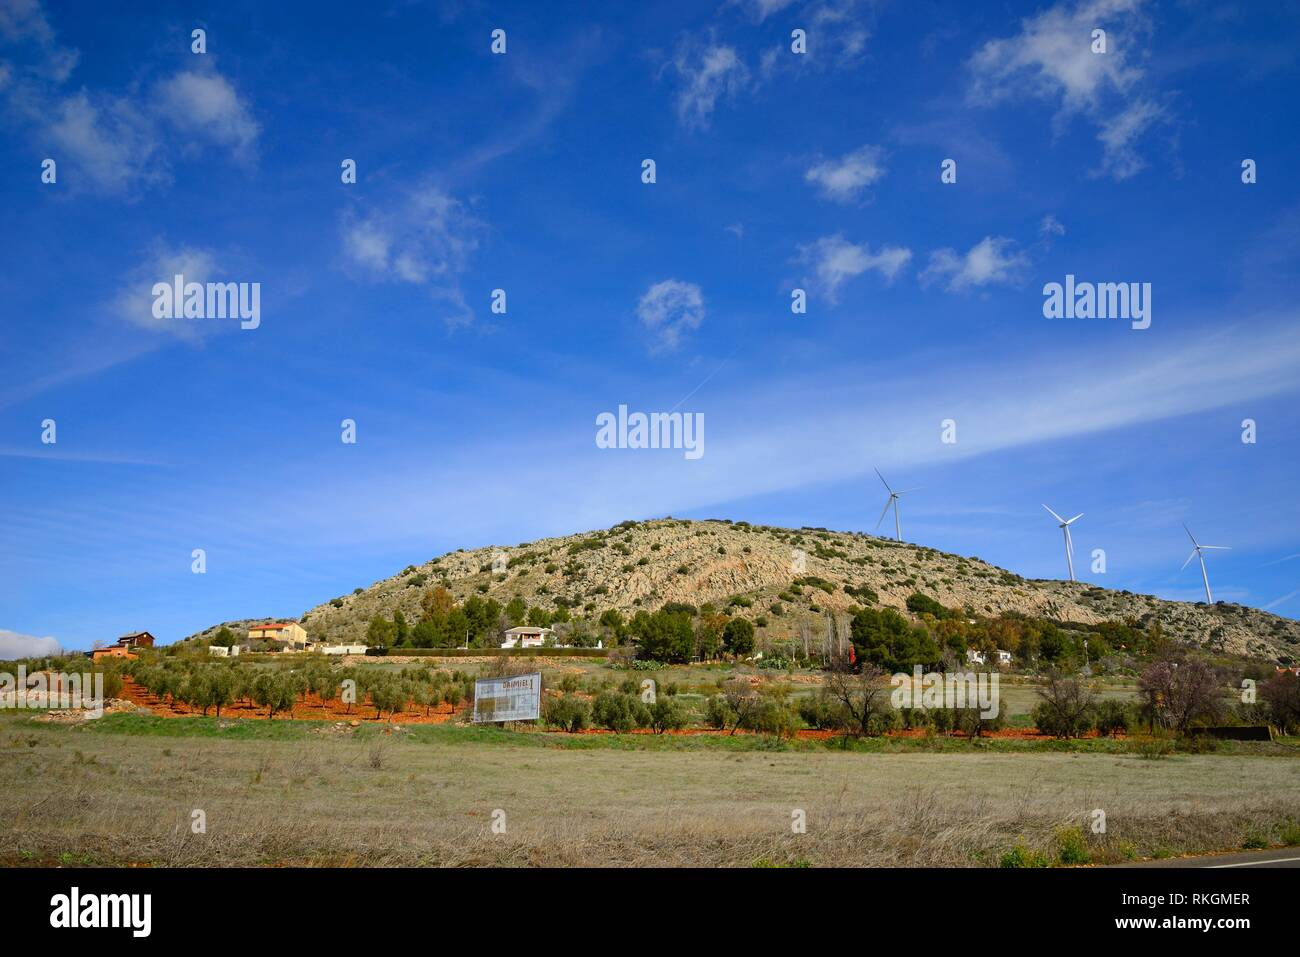 Country houses near a wind park in Moral de Calatrava. - Stock Image